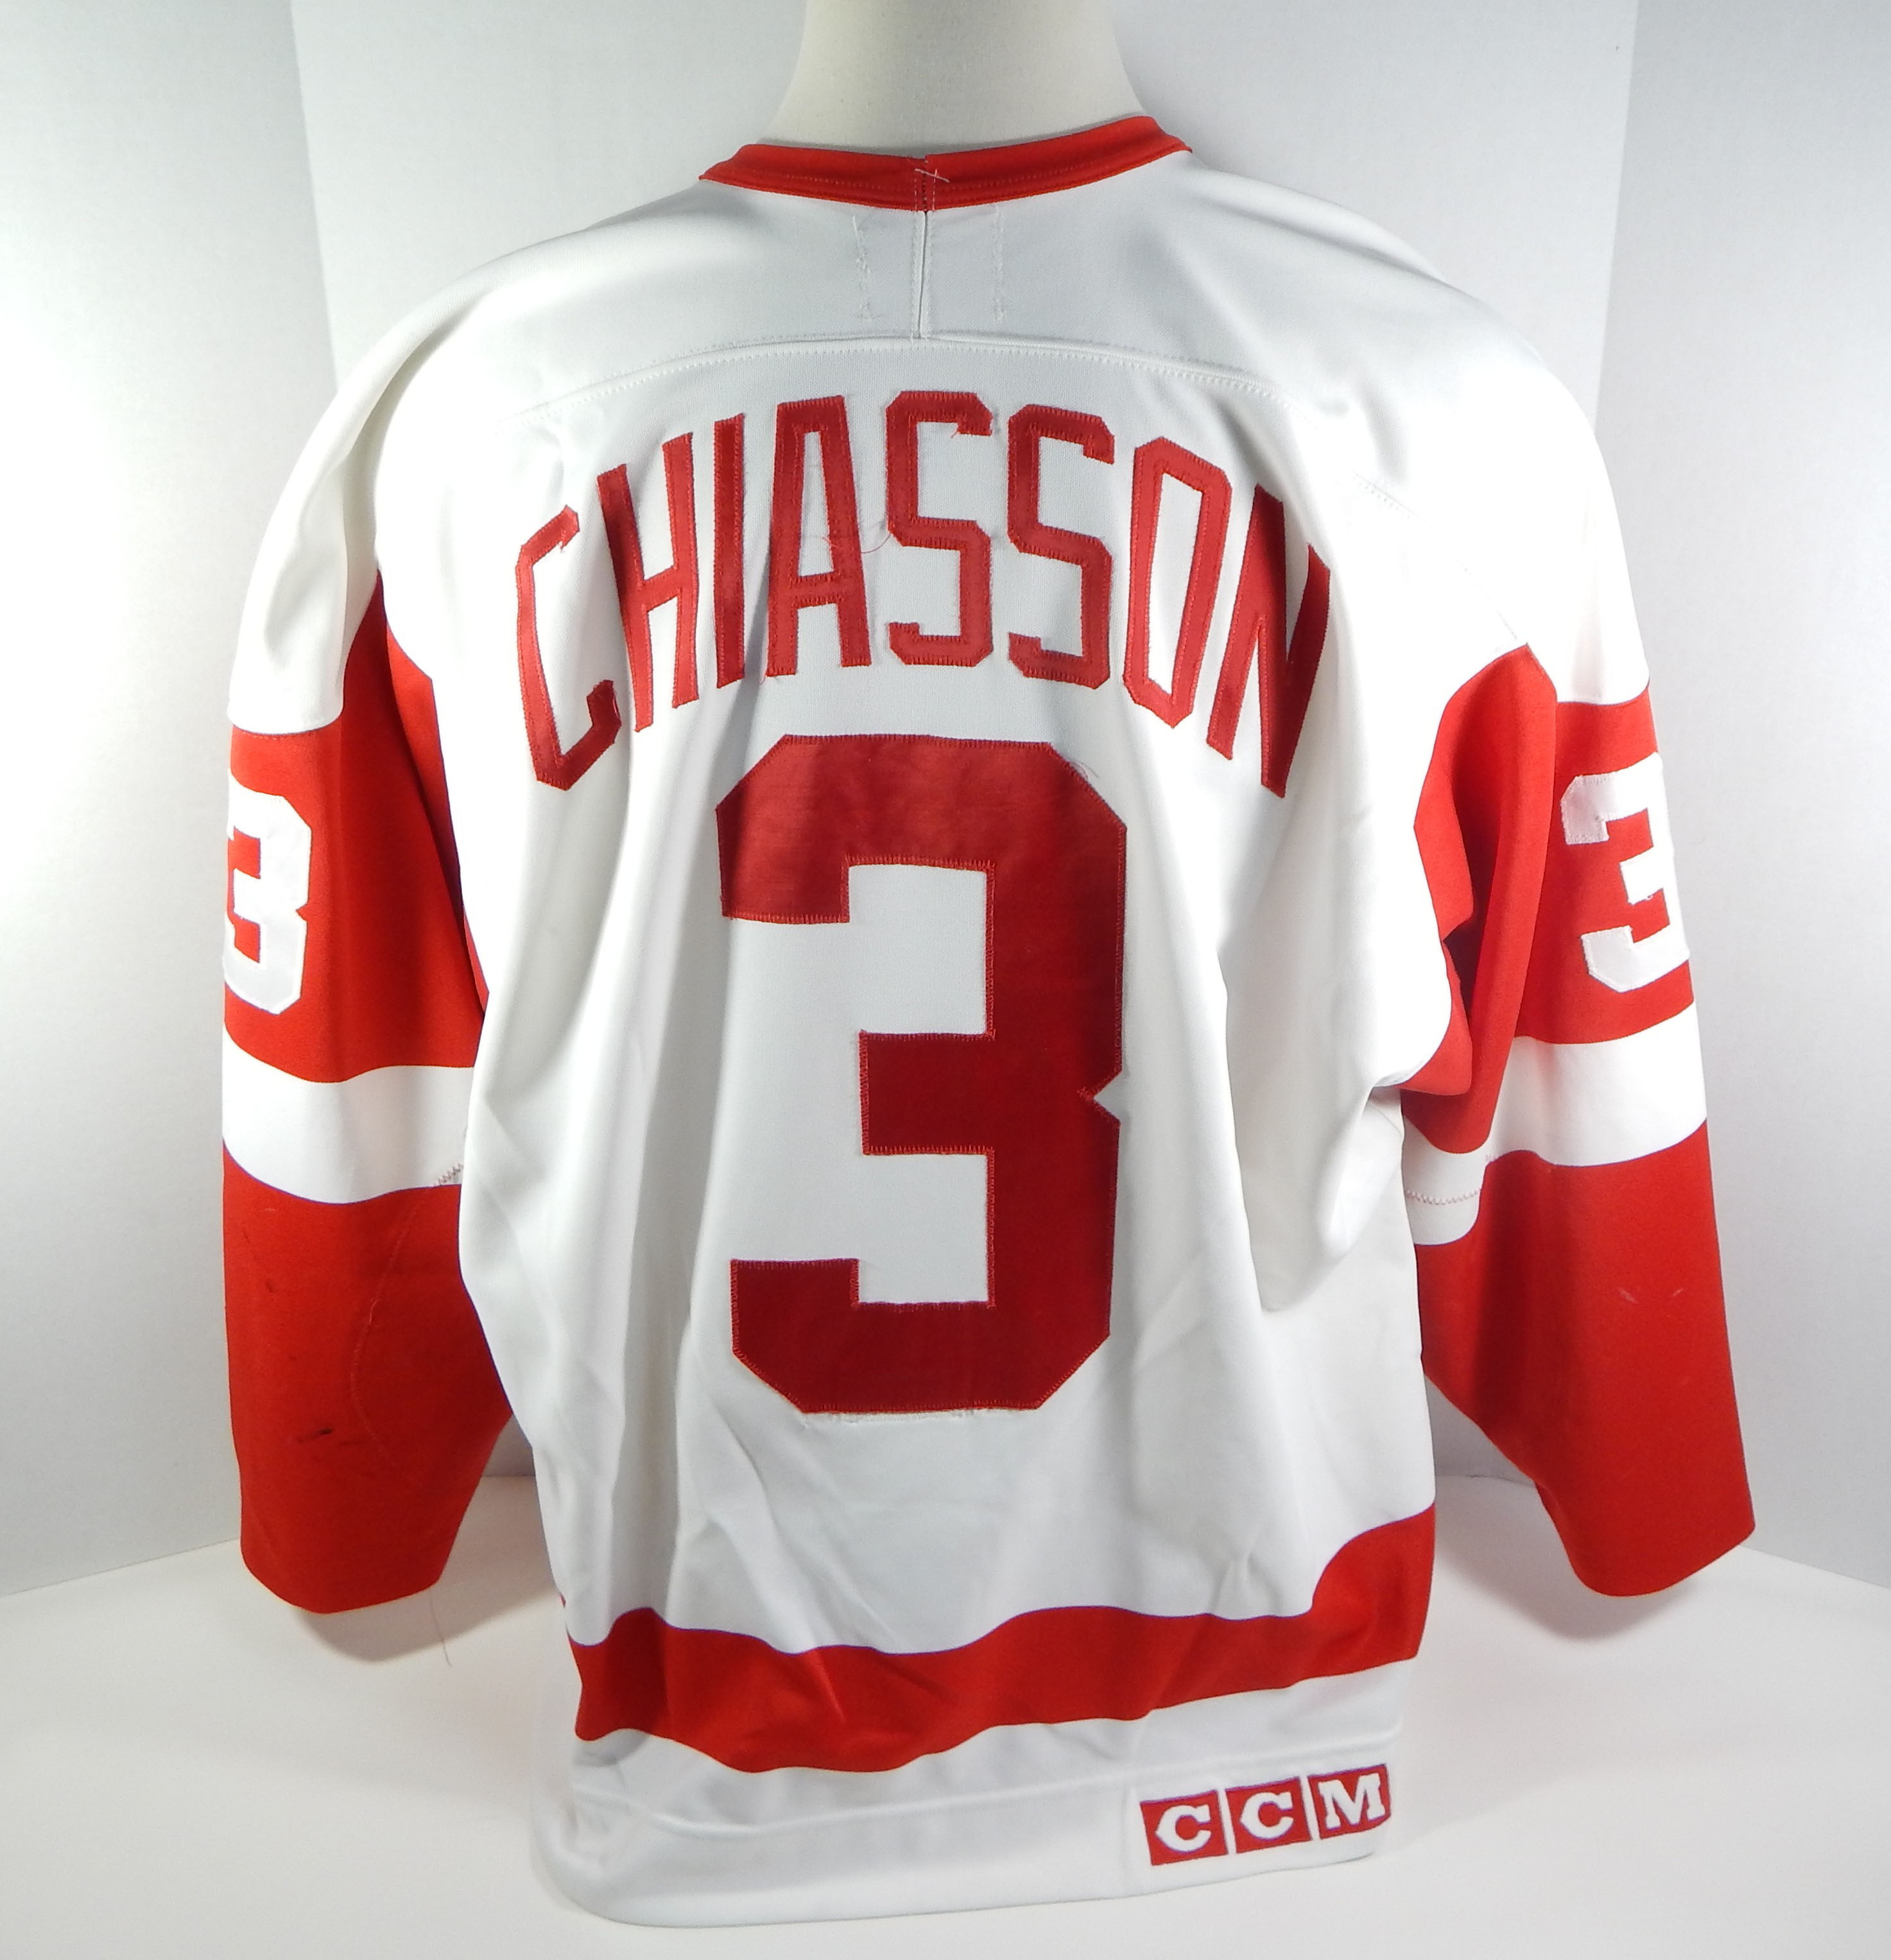 e43c2a5e4 Details about 1993-94 Detroit Red Wings Steve Chaisson  3 Game Used White  Jersey